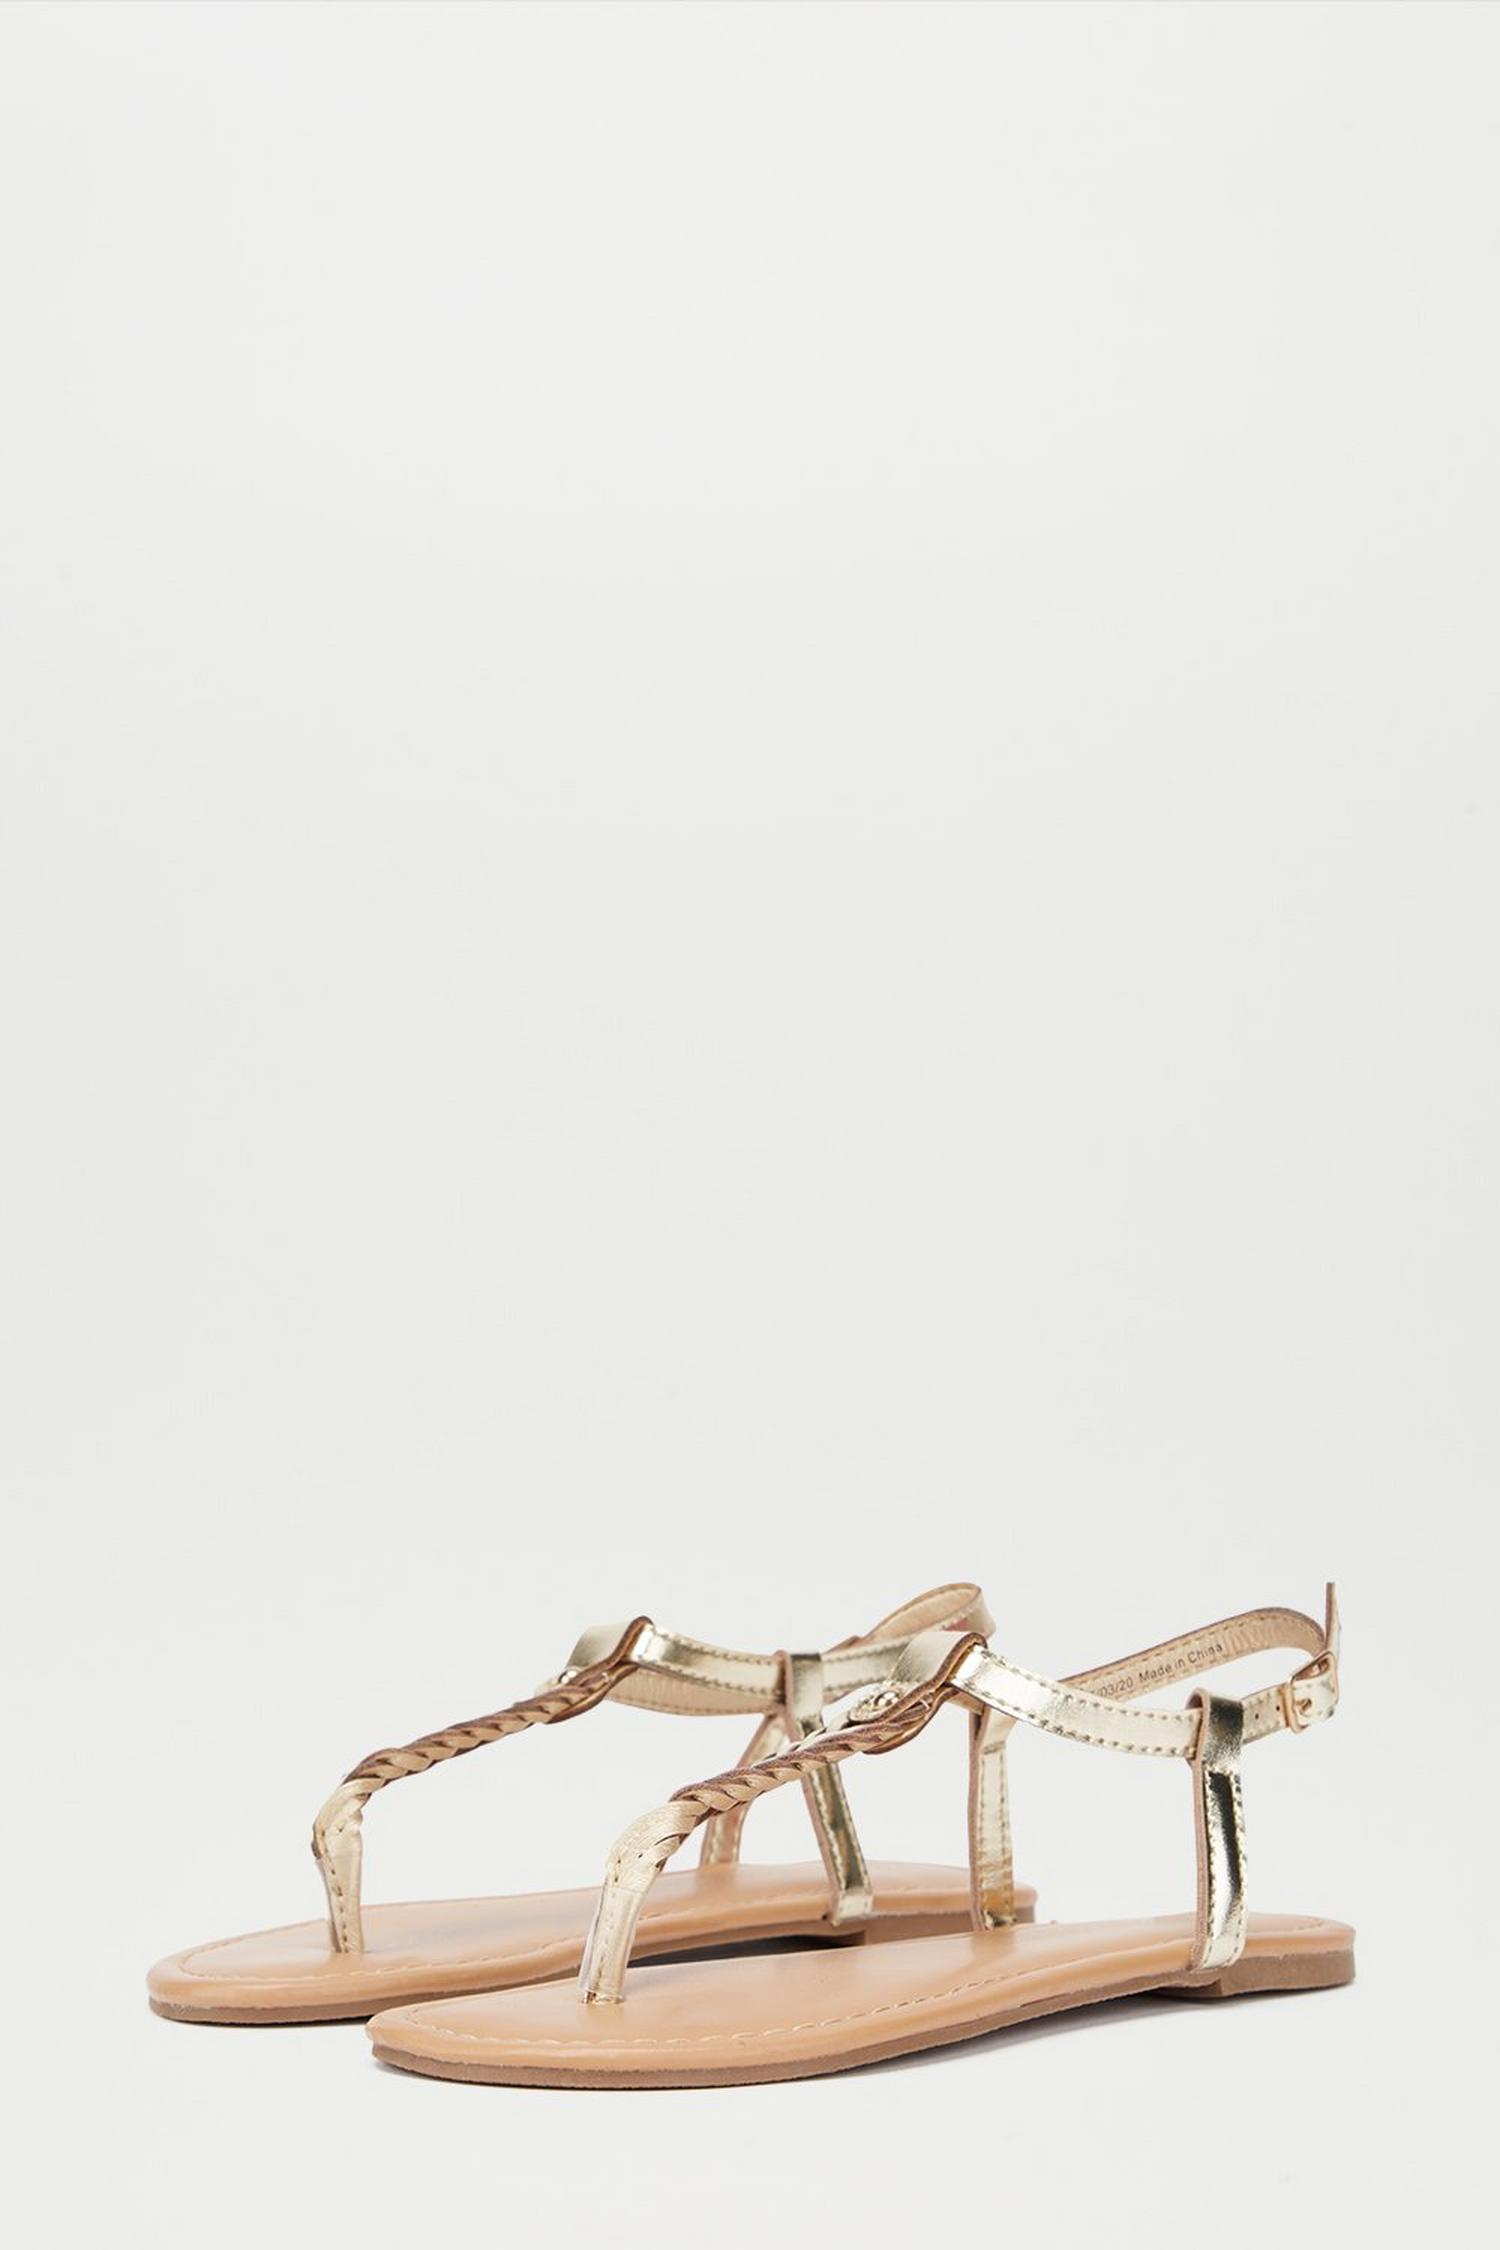 579 Gold Free Sandals image number 2